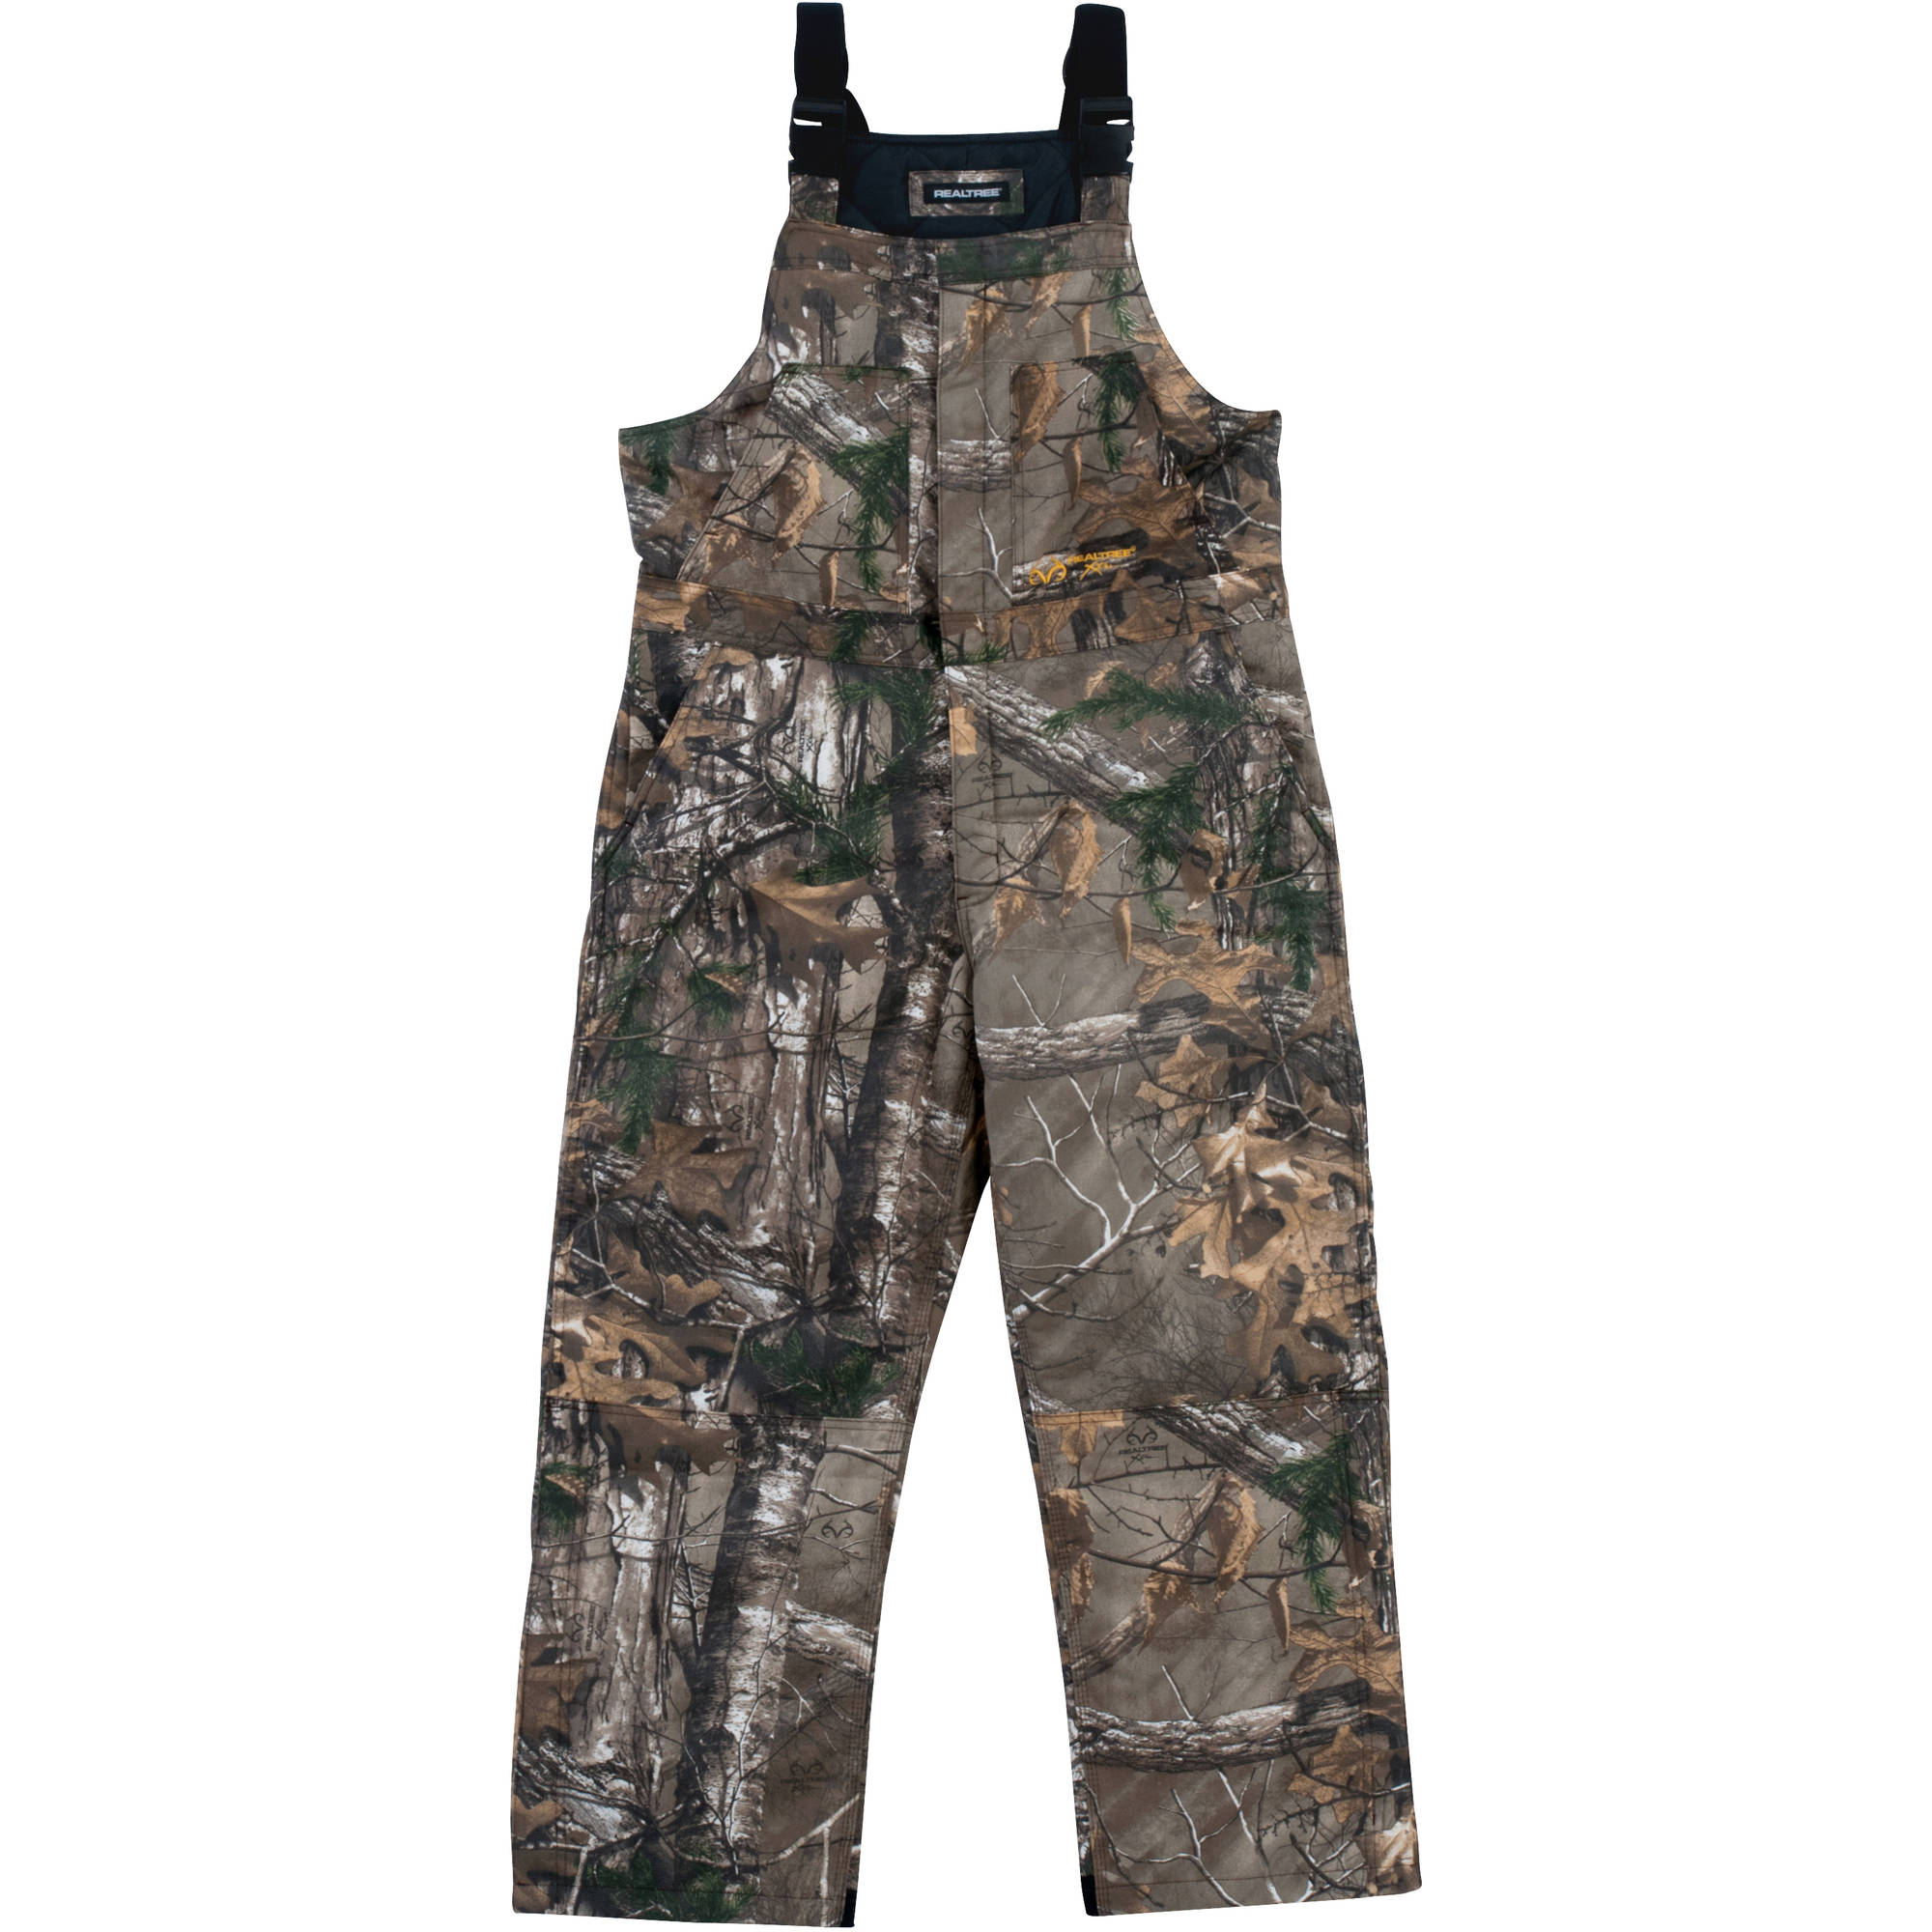 Realtree Men's Insulated Bib, Realtree Xtra by